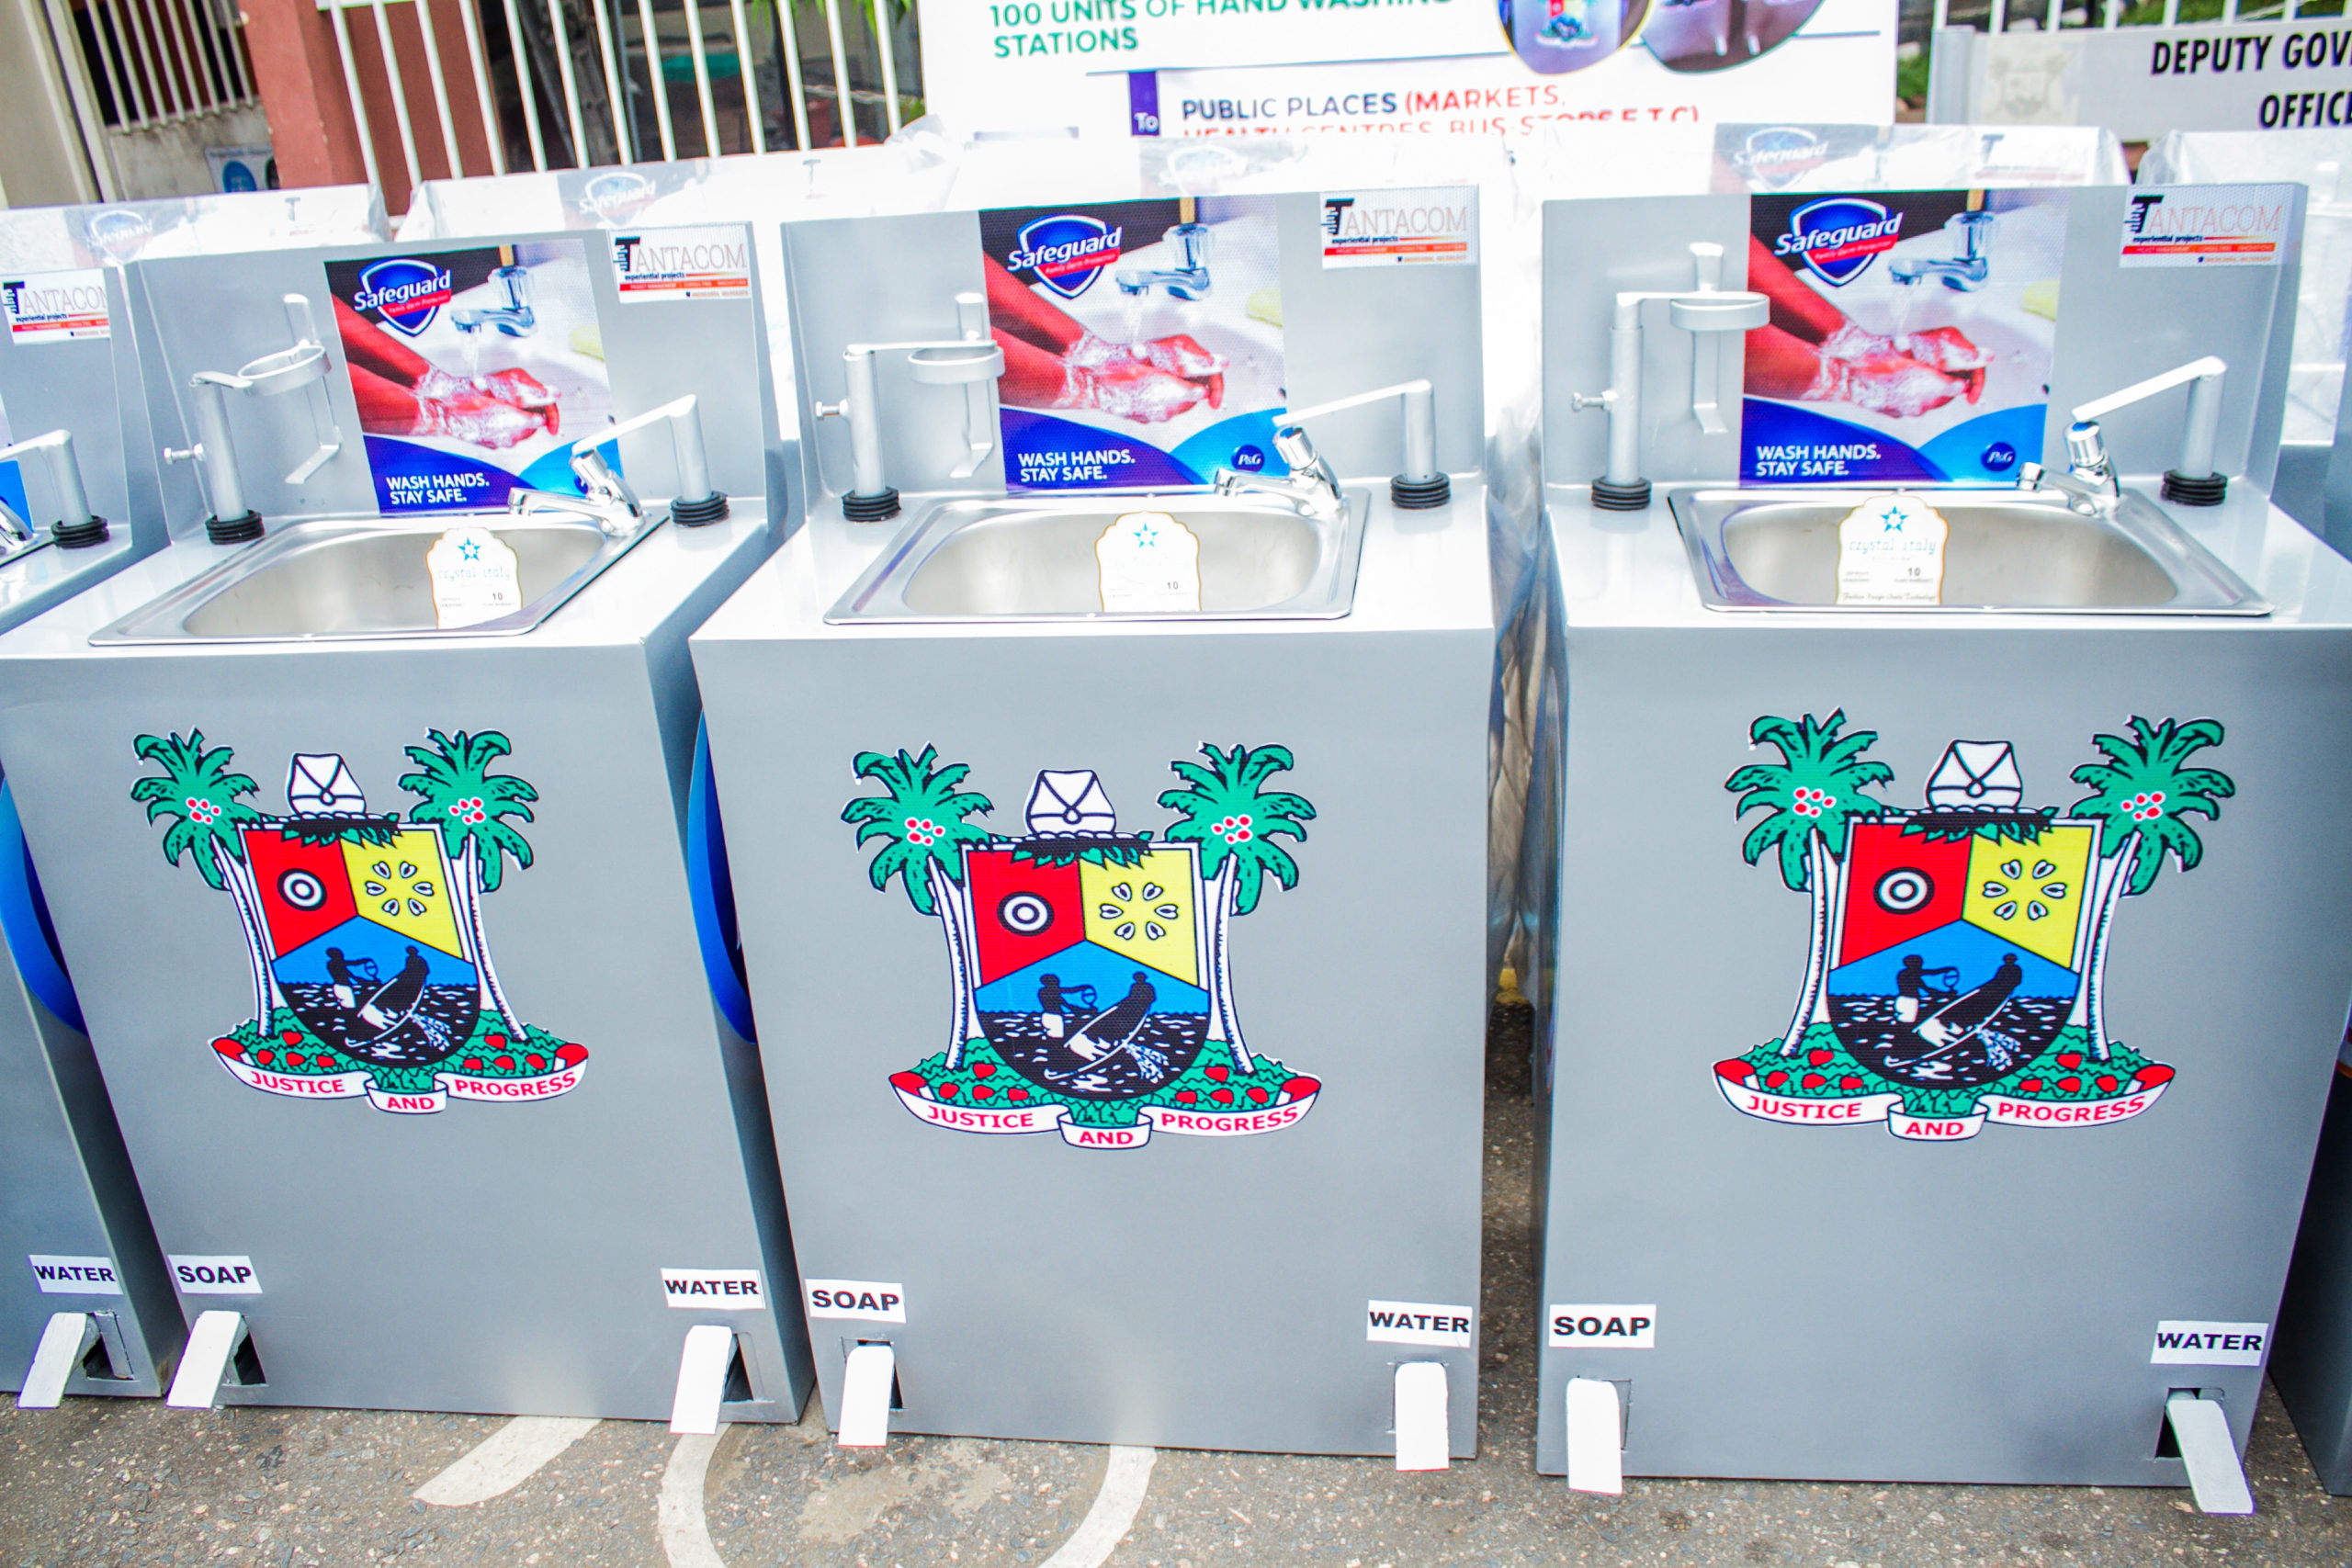 P&G Concludes 2nd Phase of its COVID-19 Intervention With the Donation of Over 150 Handwashing Stations to State Govts